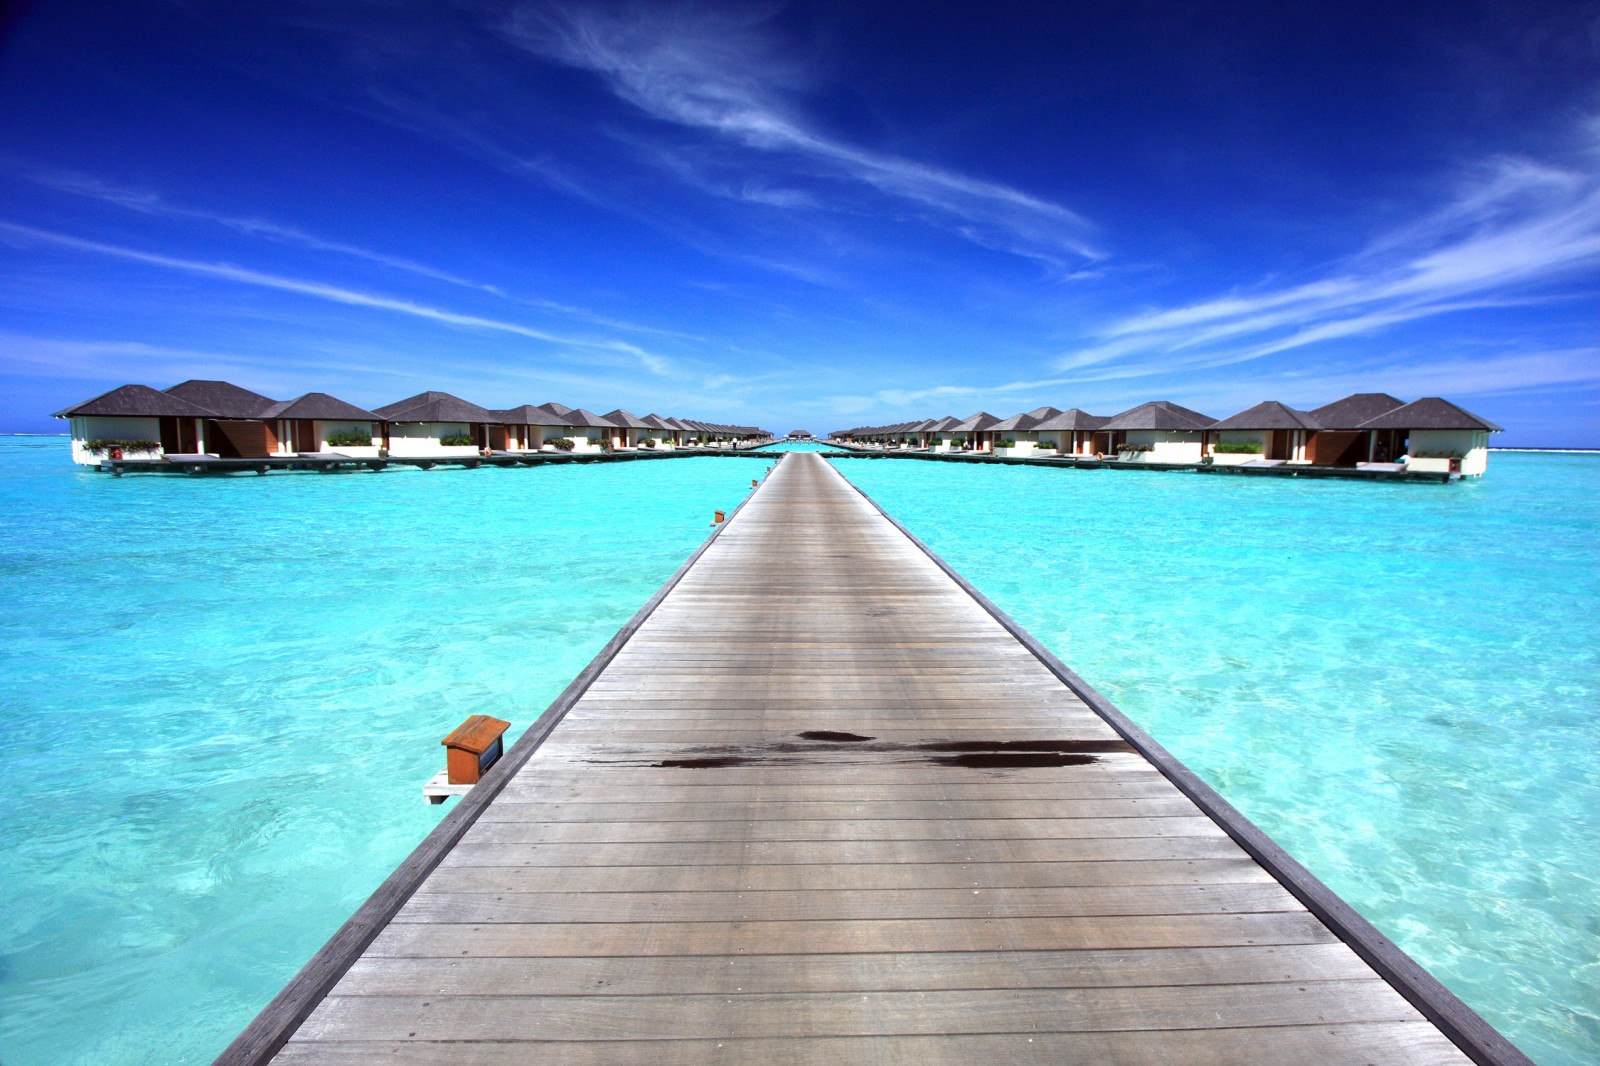 Tips to plan your Maldives trip on a budget